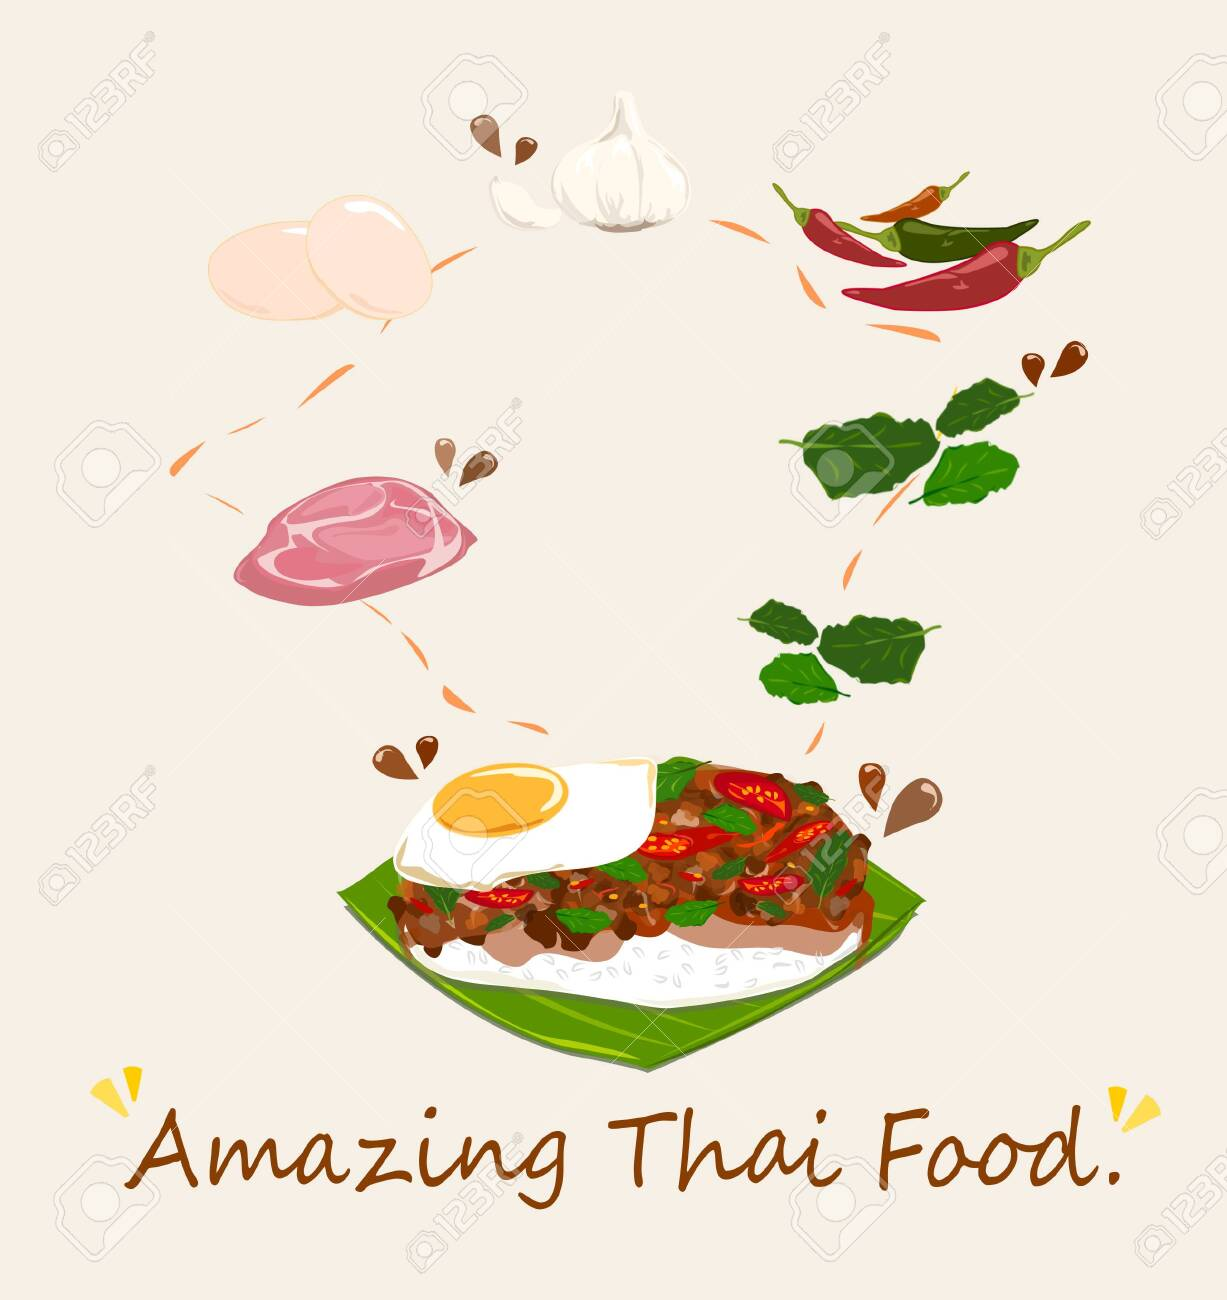 Spicy Thai basil with Pork and Egg (Pad Krapow Mhoo Sub) vector . it is a very delicious Thai food. Rice topped with stir-fried pork and basil leaves . street food in Thailand. - 128699077